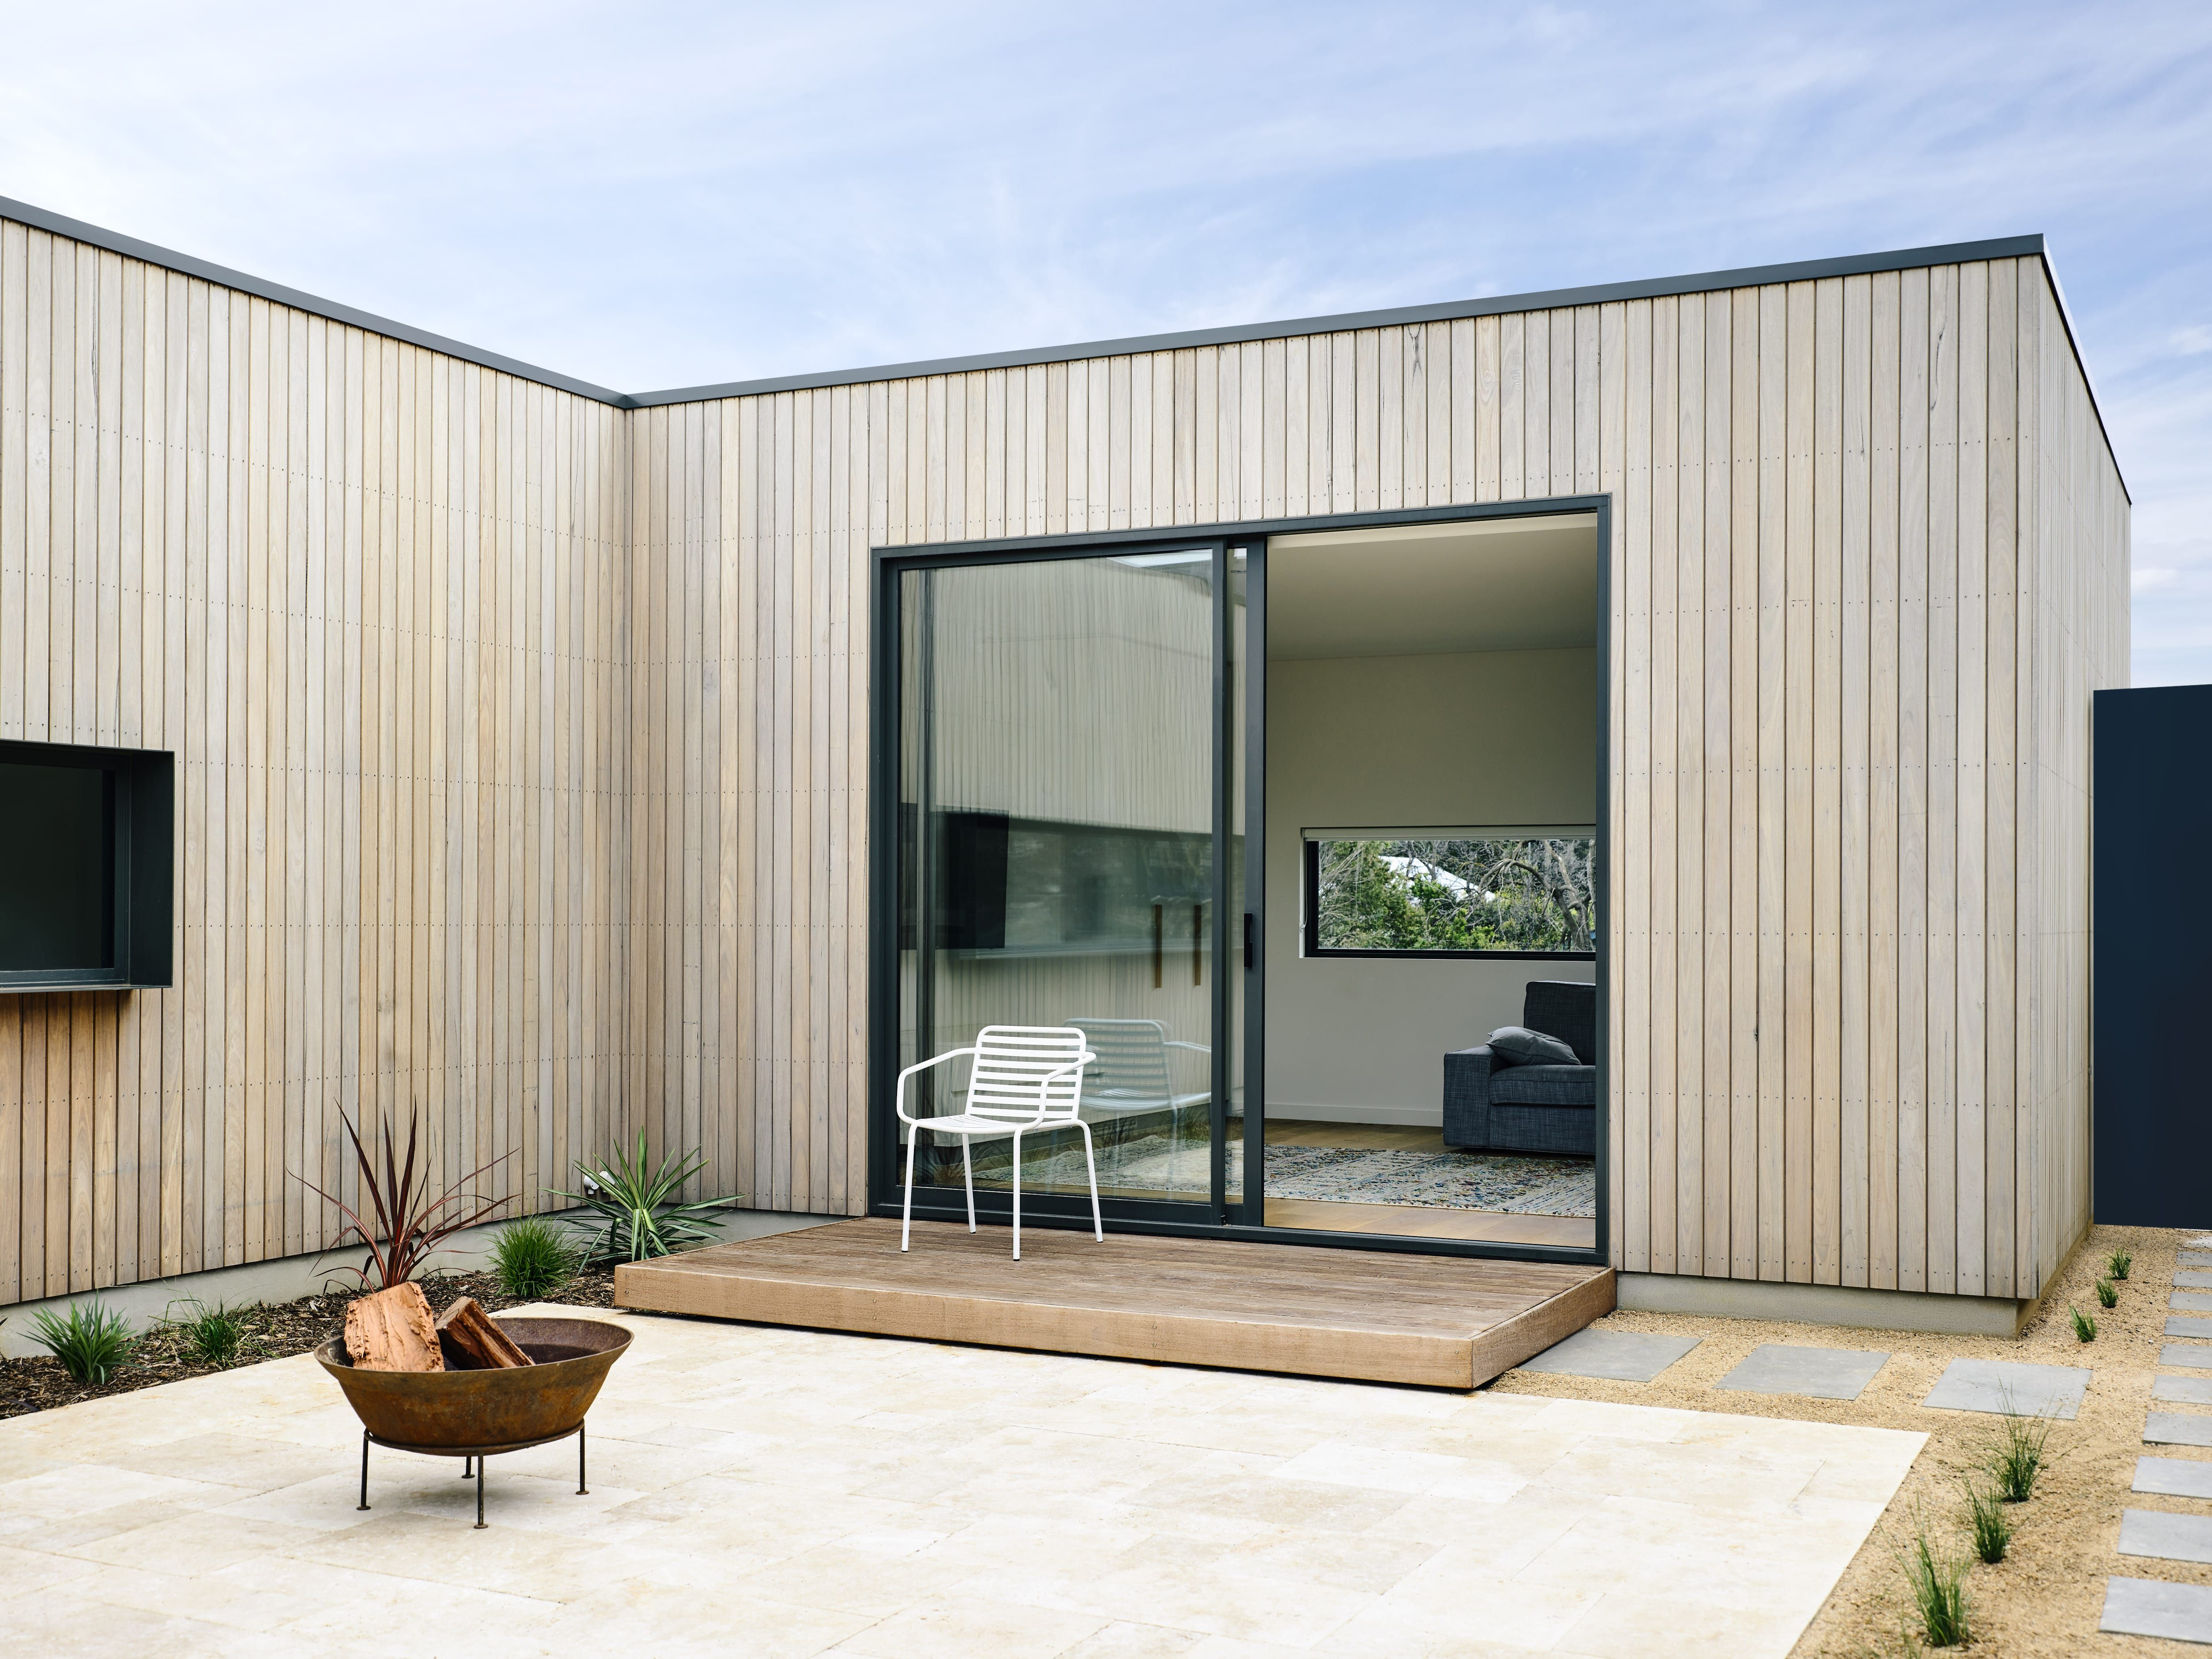 Archive of point lonsdale beach house by inform design photographed by derek swalwell